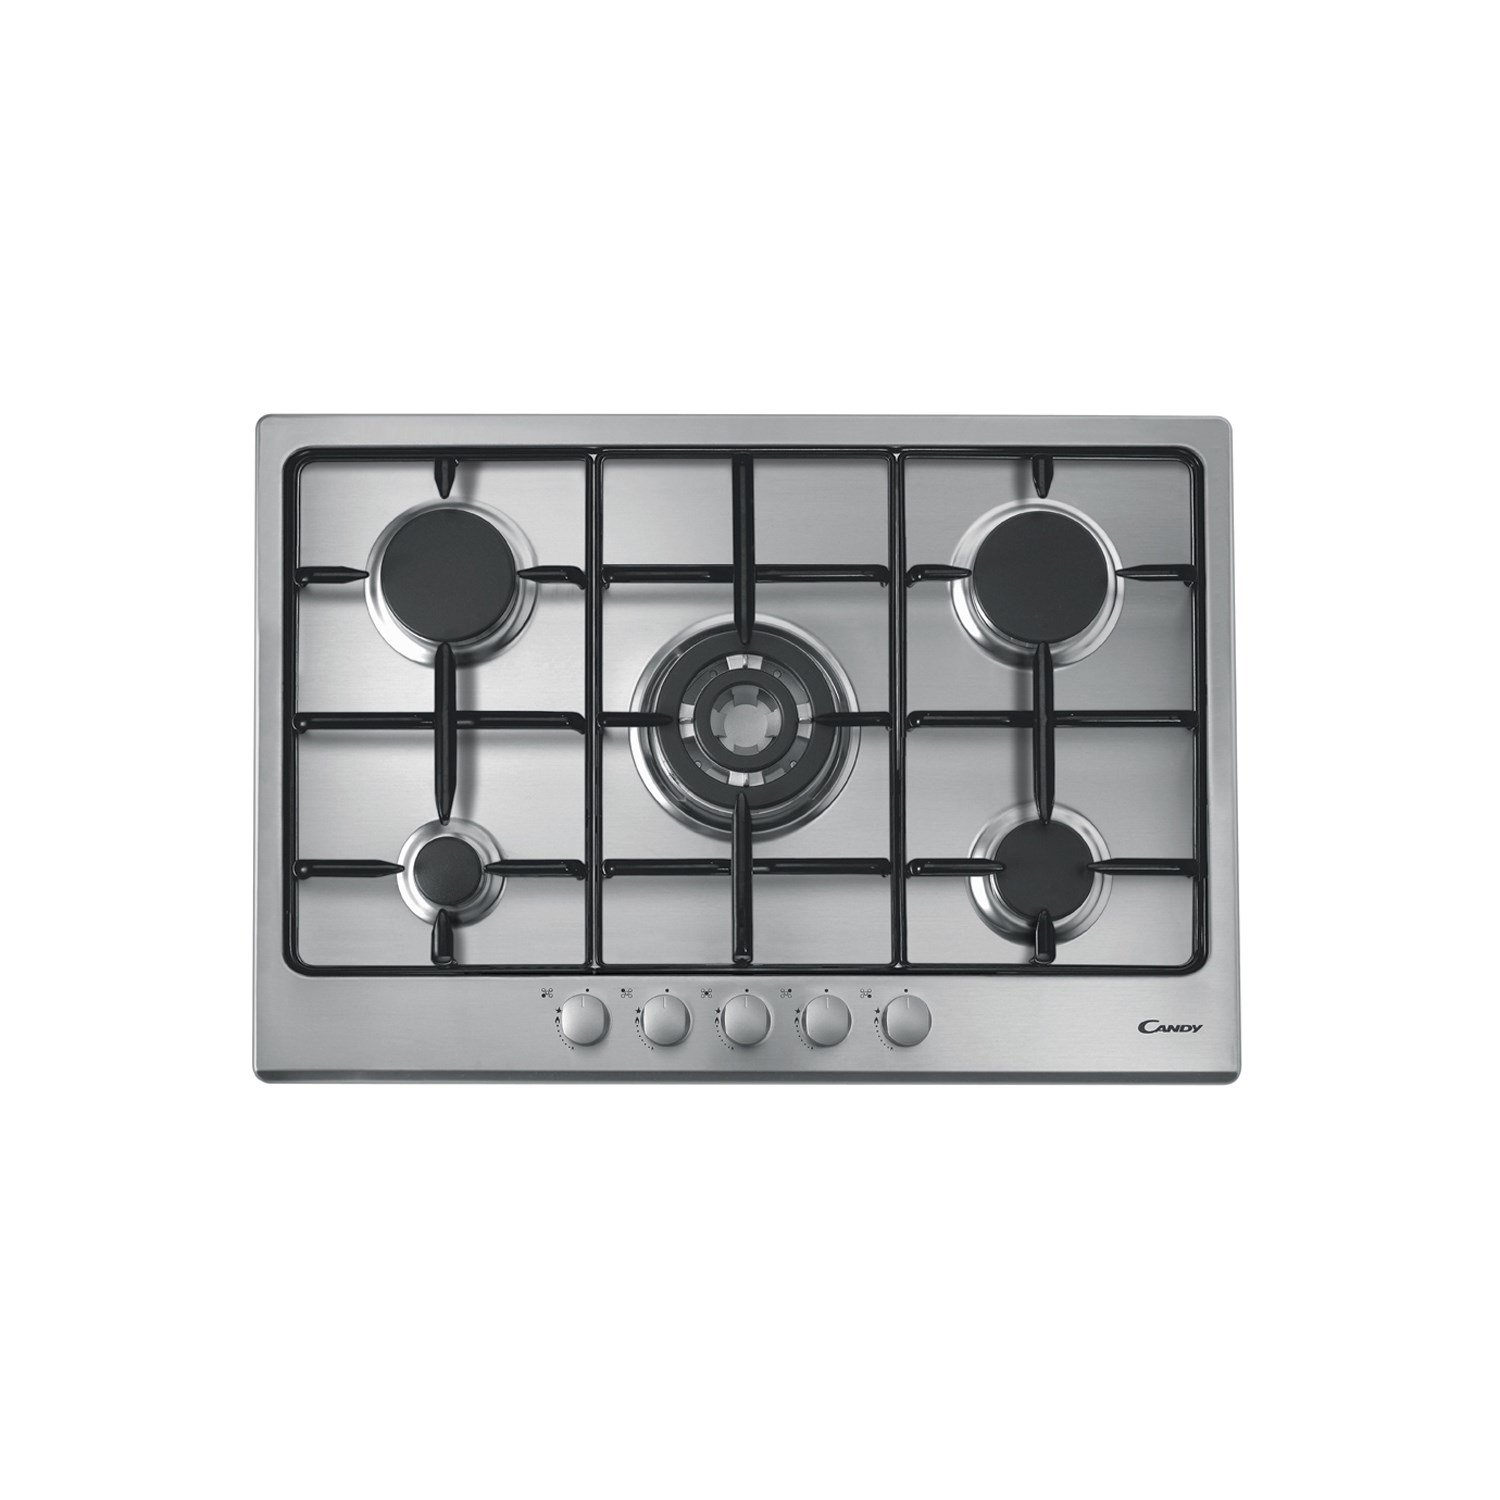 Candy CPG 75 SQPX built-in Gas Stainless steel hob - hobs (Built ...